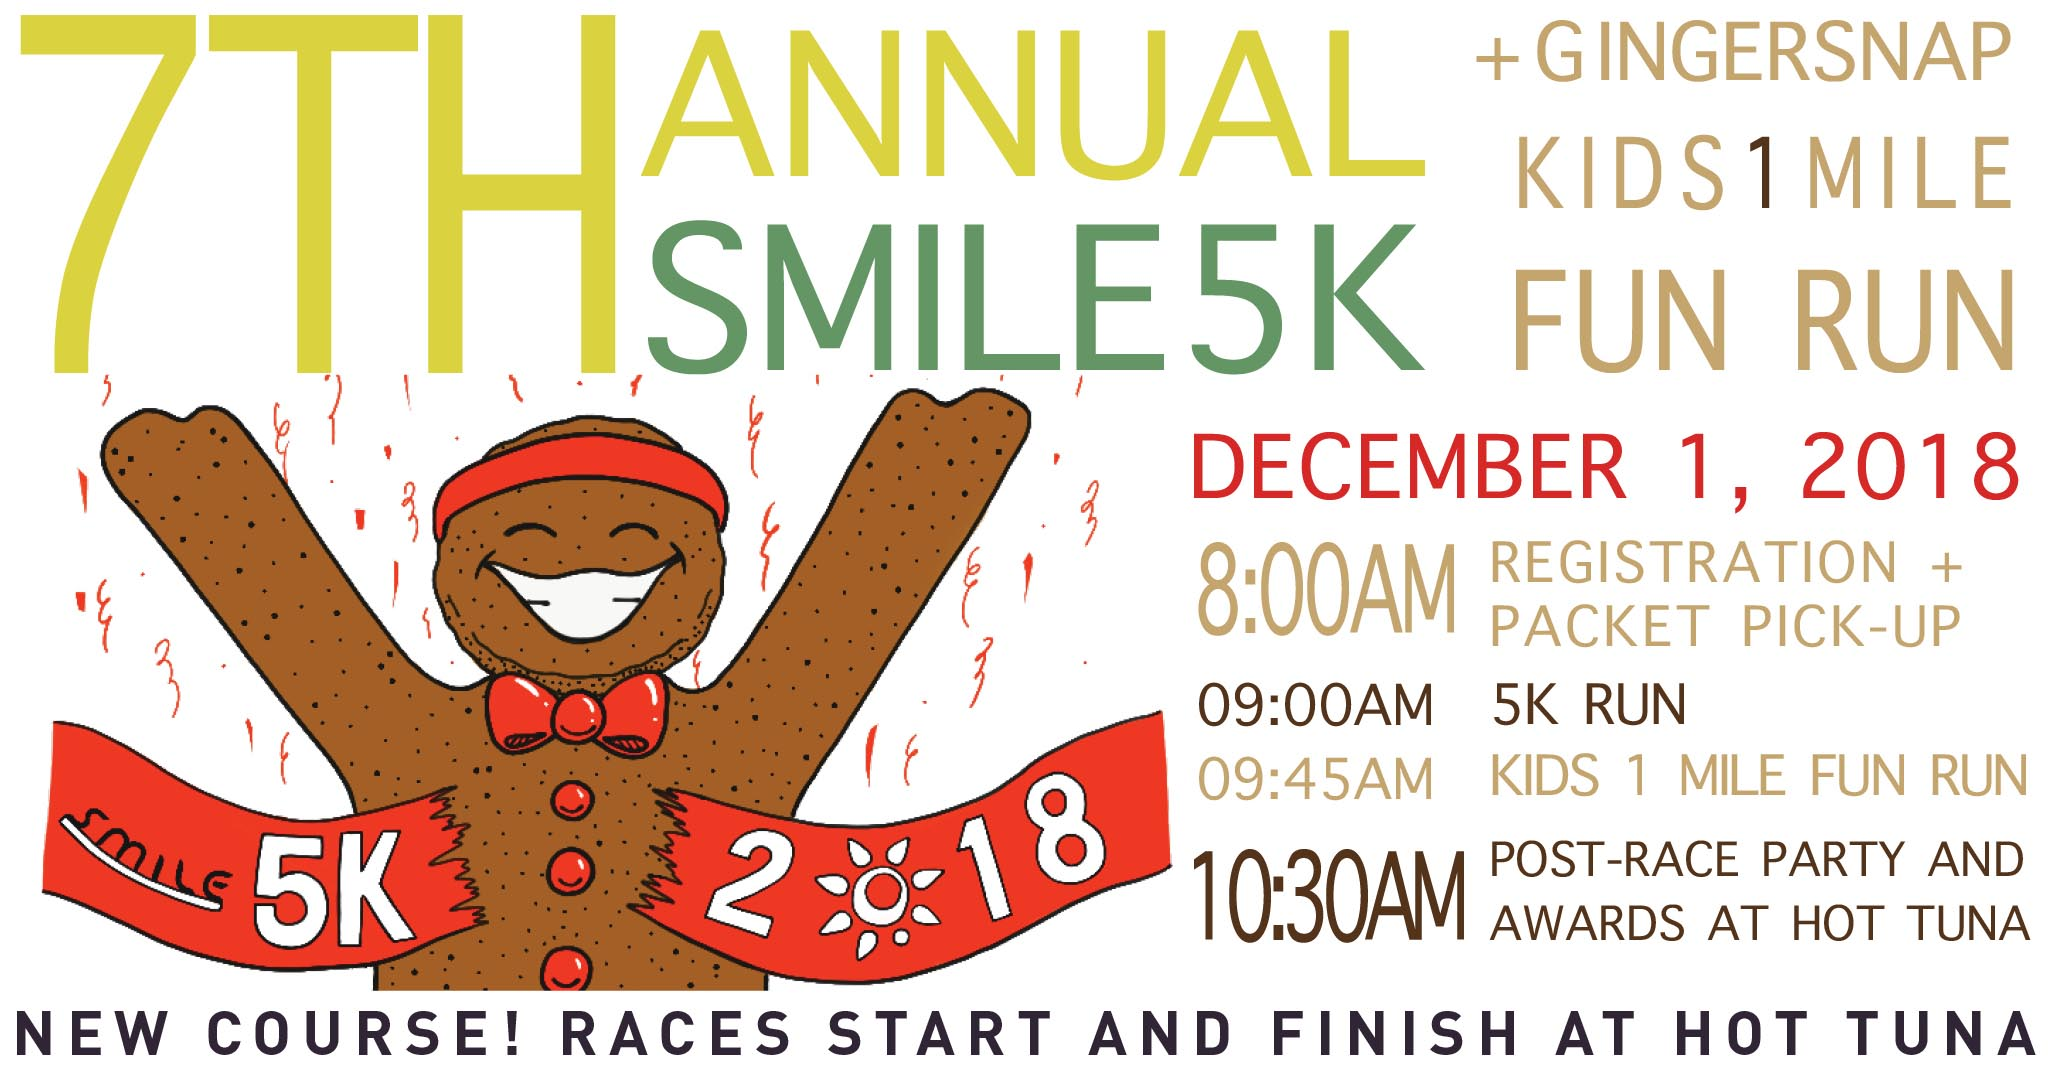 SMILE 5K 2018 Facebook event image.jpg